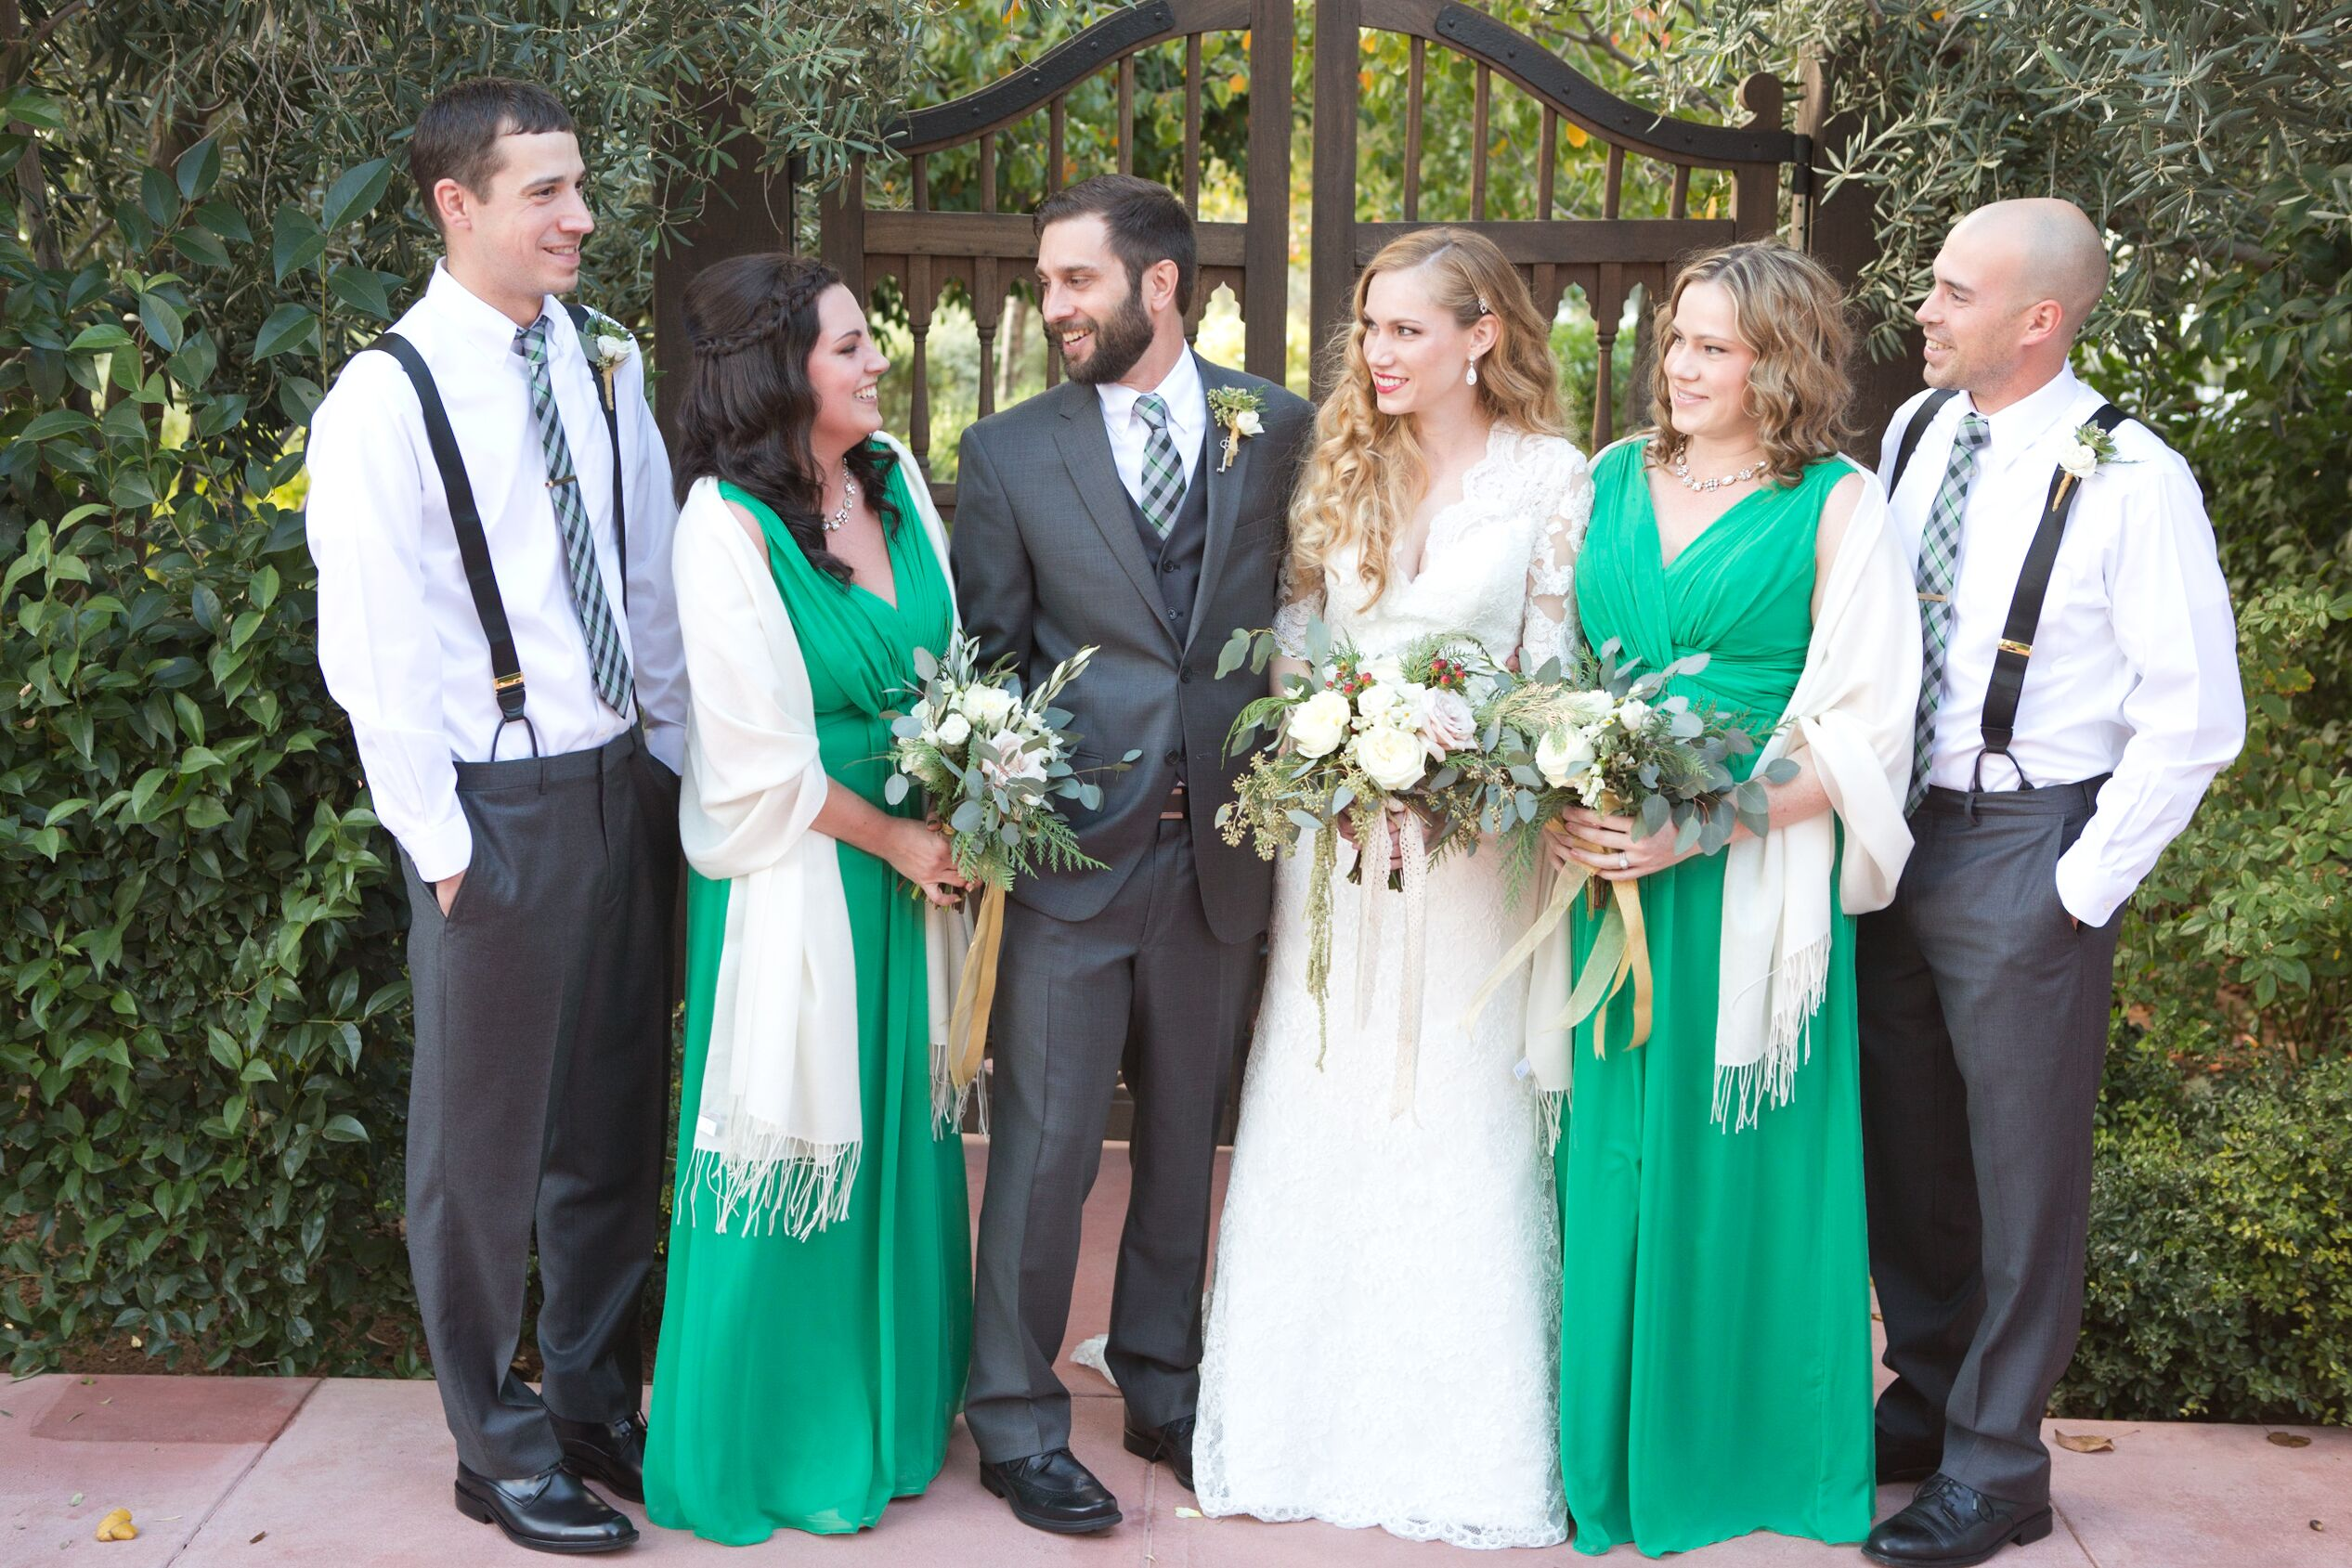 emerald green and white wedding party